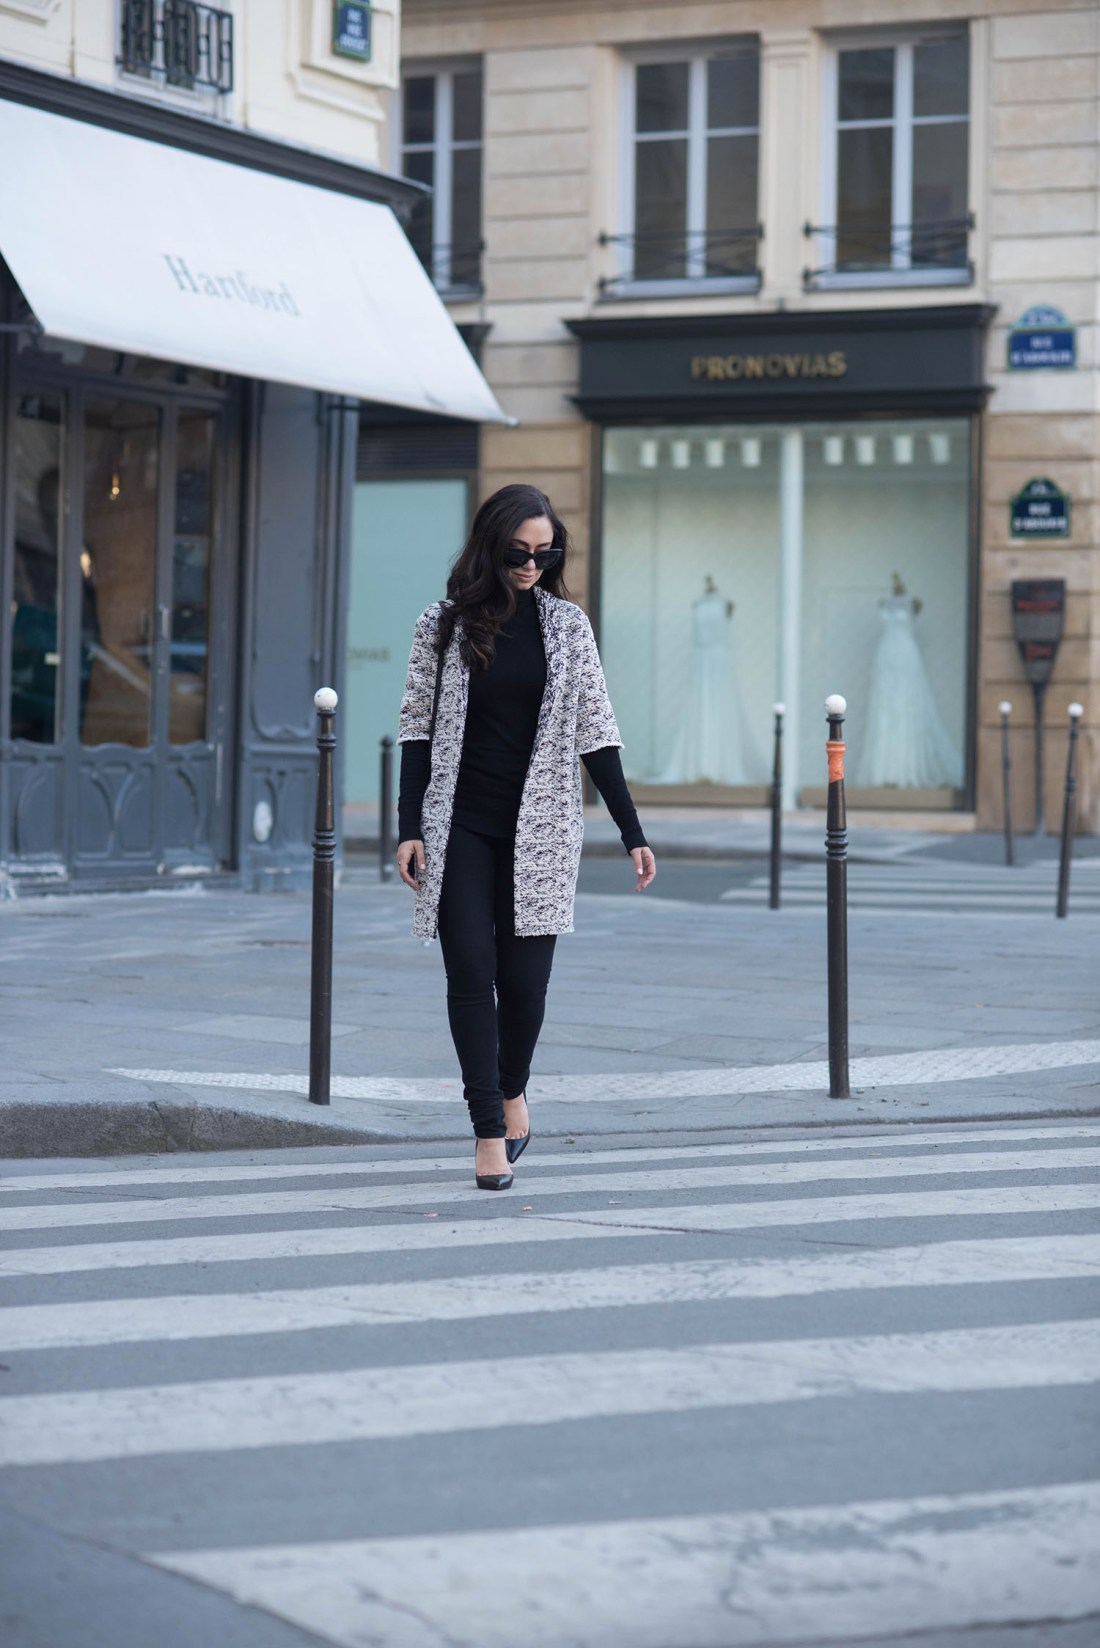 Fashion blogger Cee Fardoe of Coco & Vera wearing a Floriane Fosso coat and Christian Louboutin Pigalle pumps in Paris